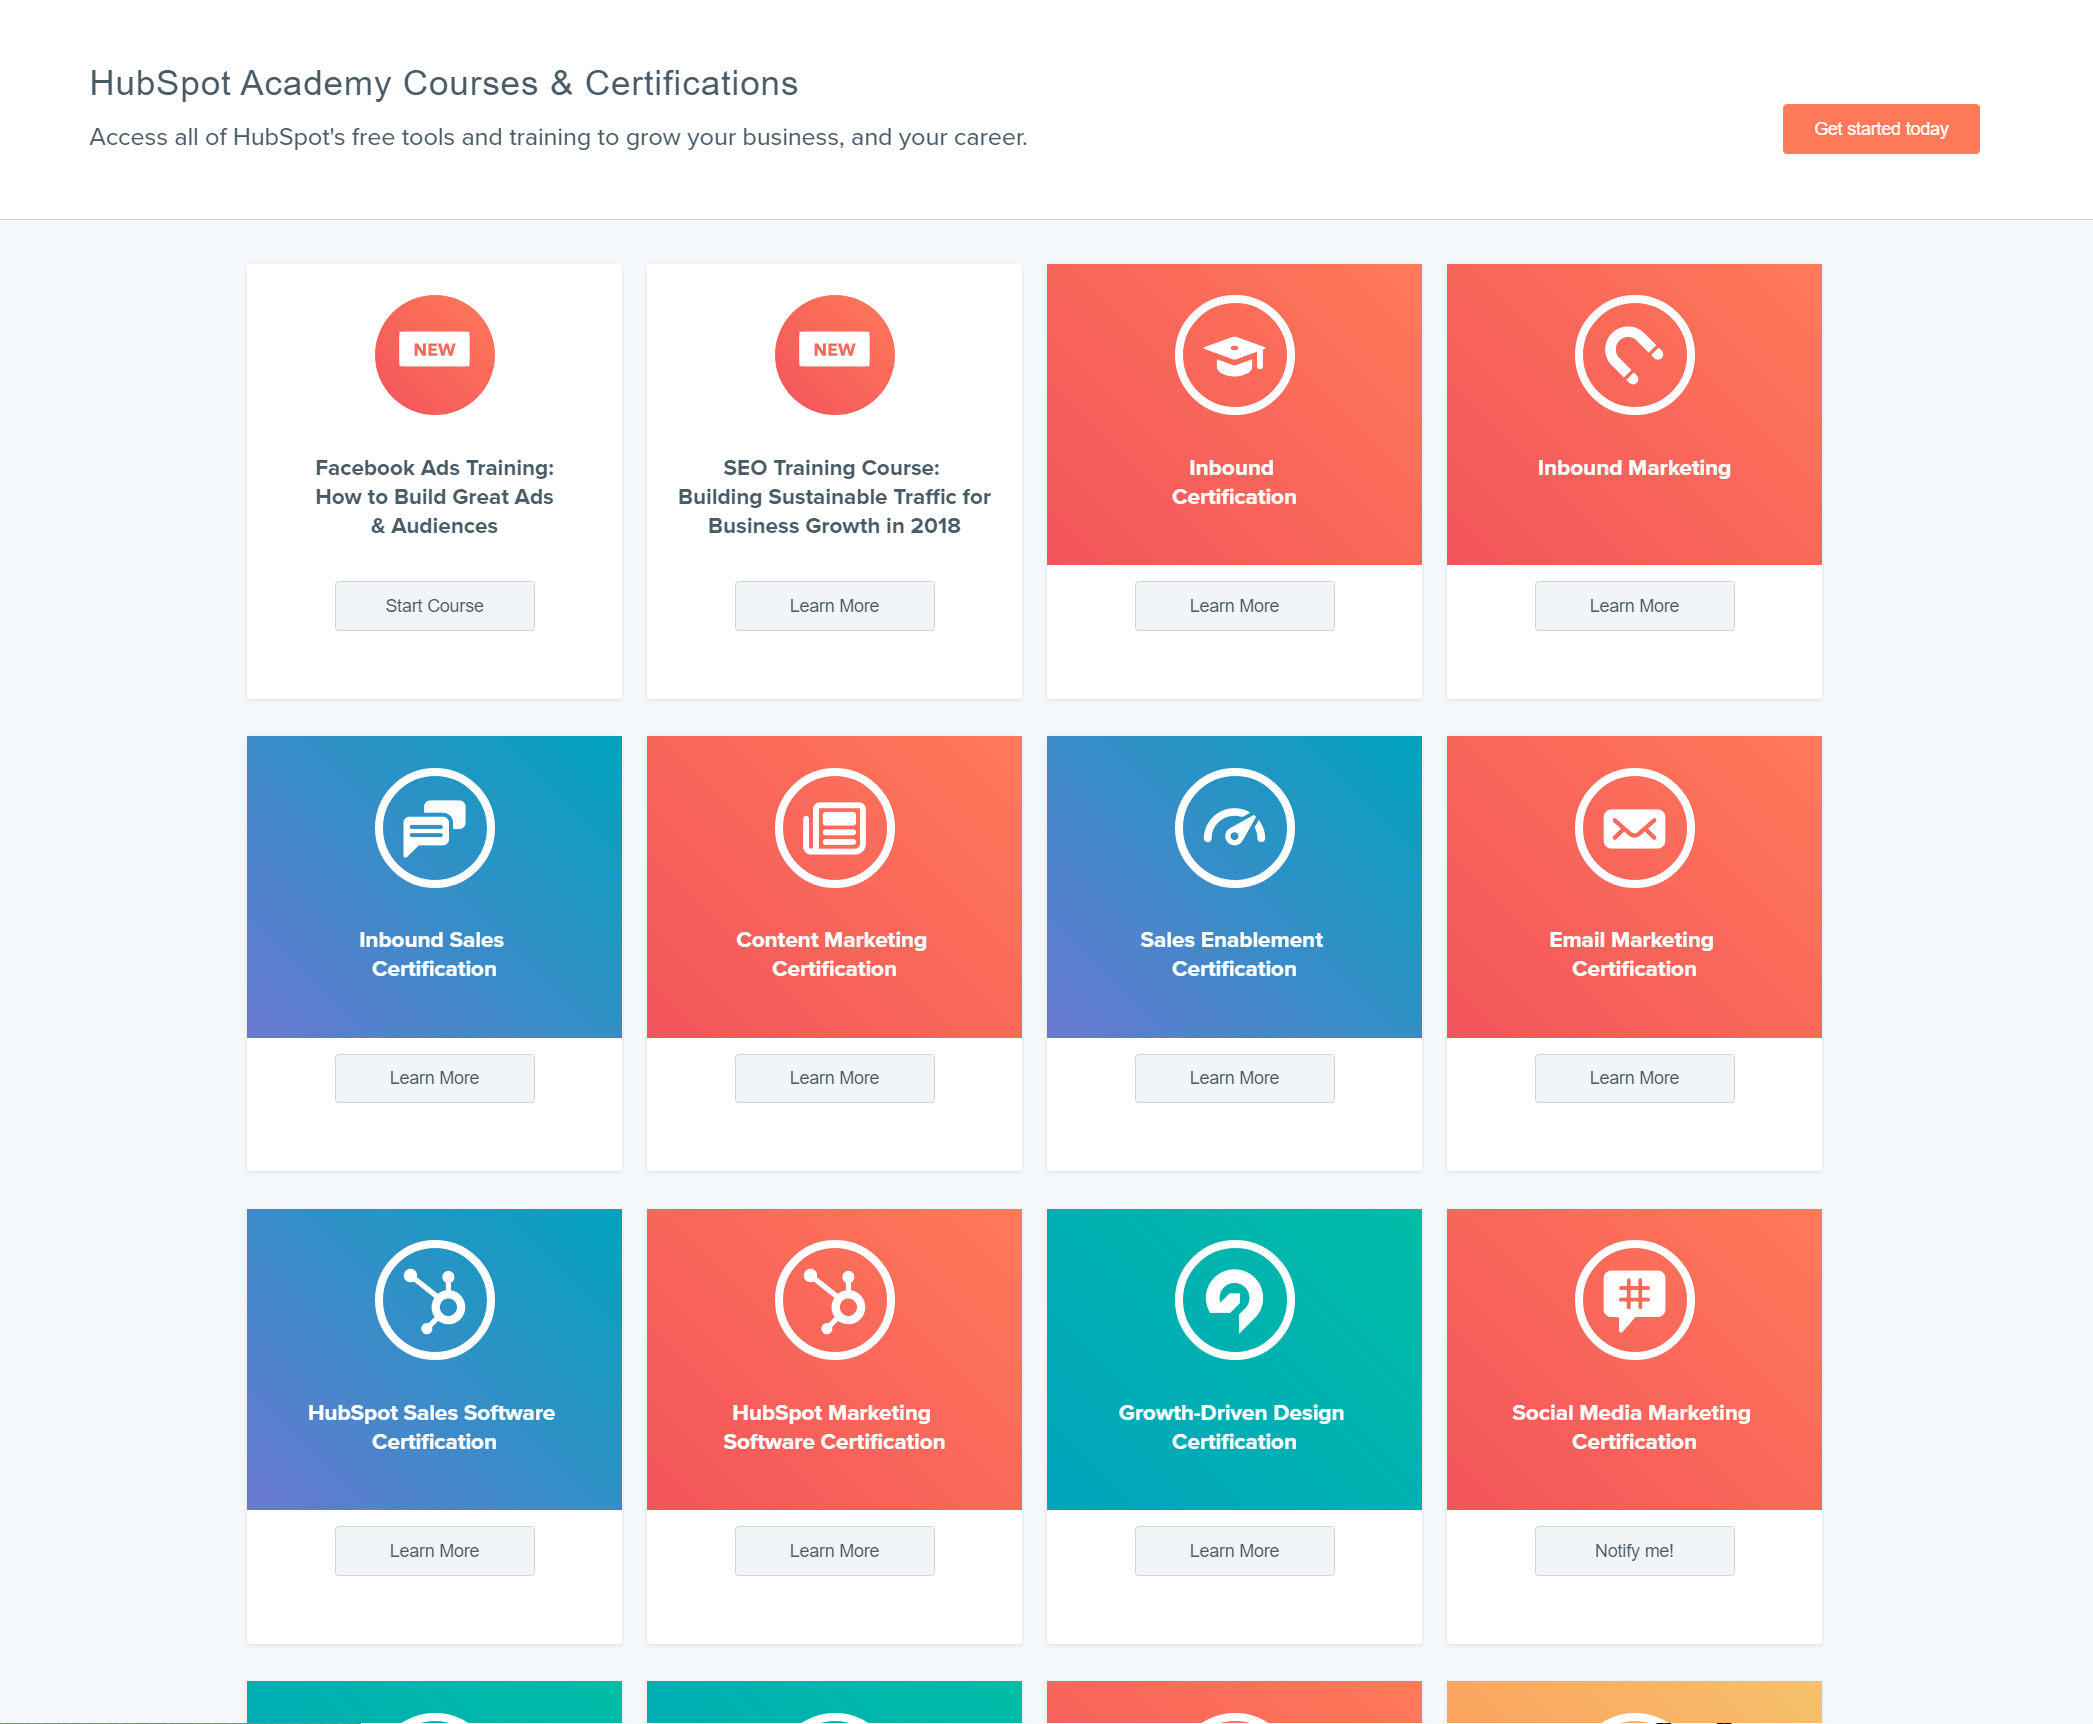 hubspot academy churn retention upsell